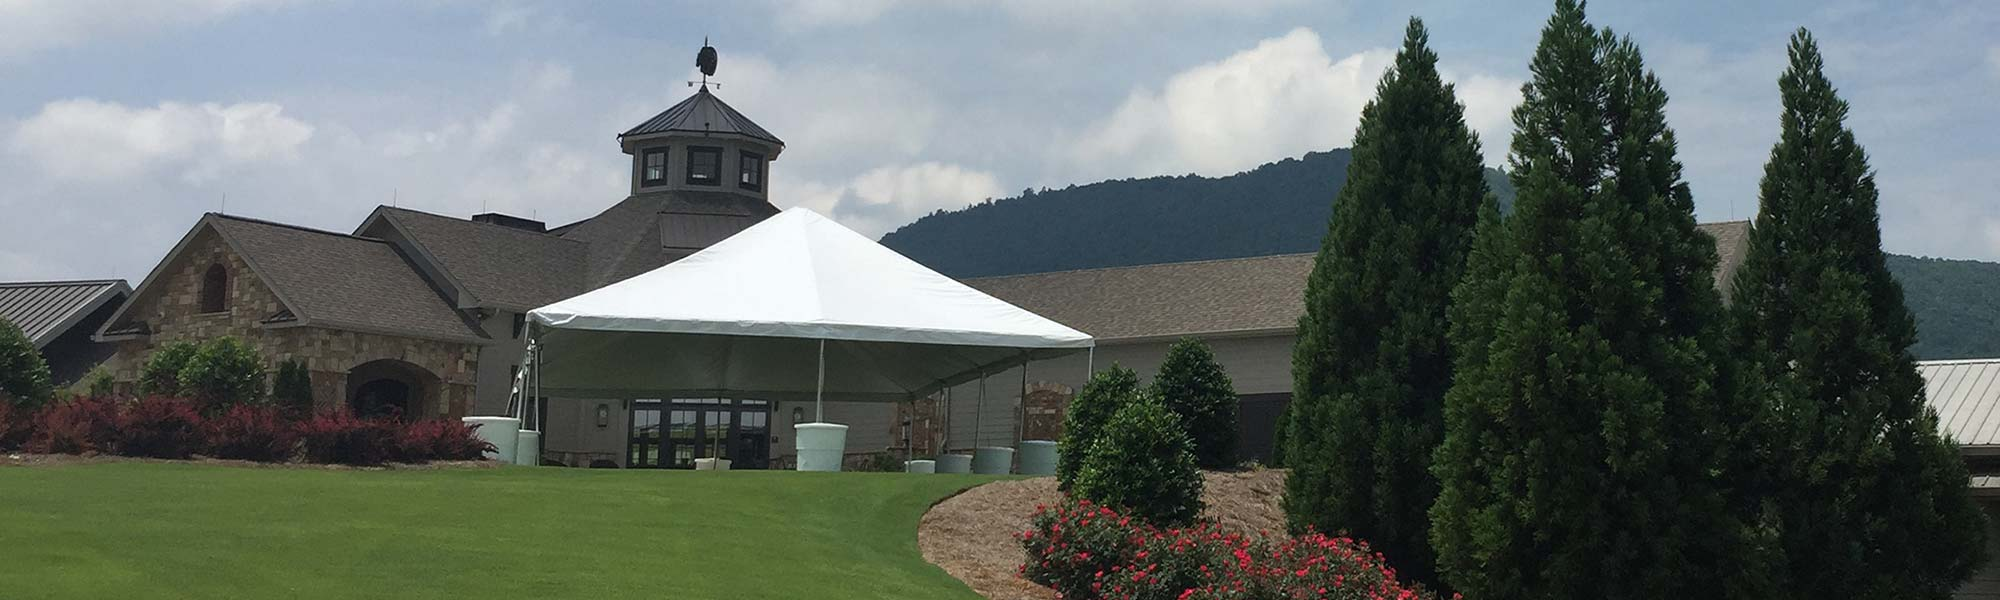 American Tent Sidewall Commercial Tents And Sidewalls For Sale